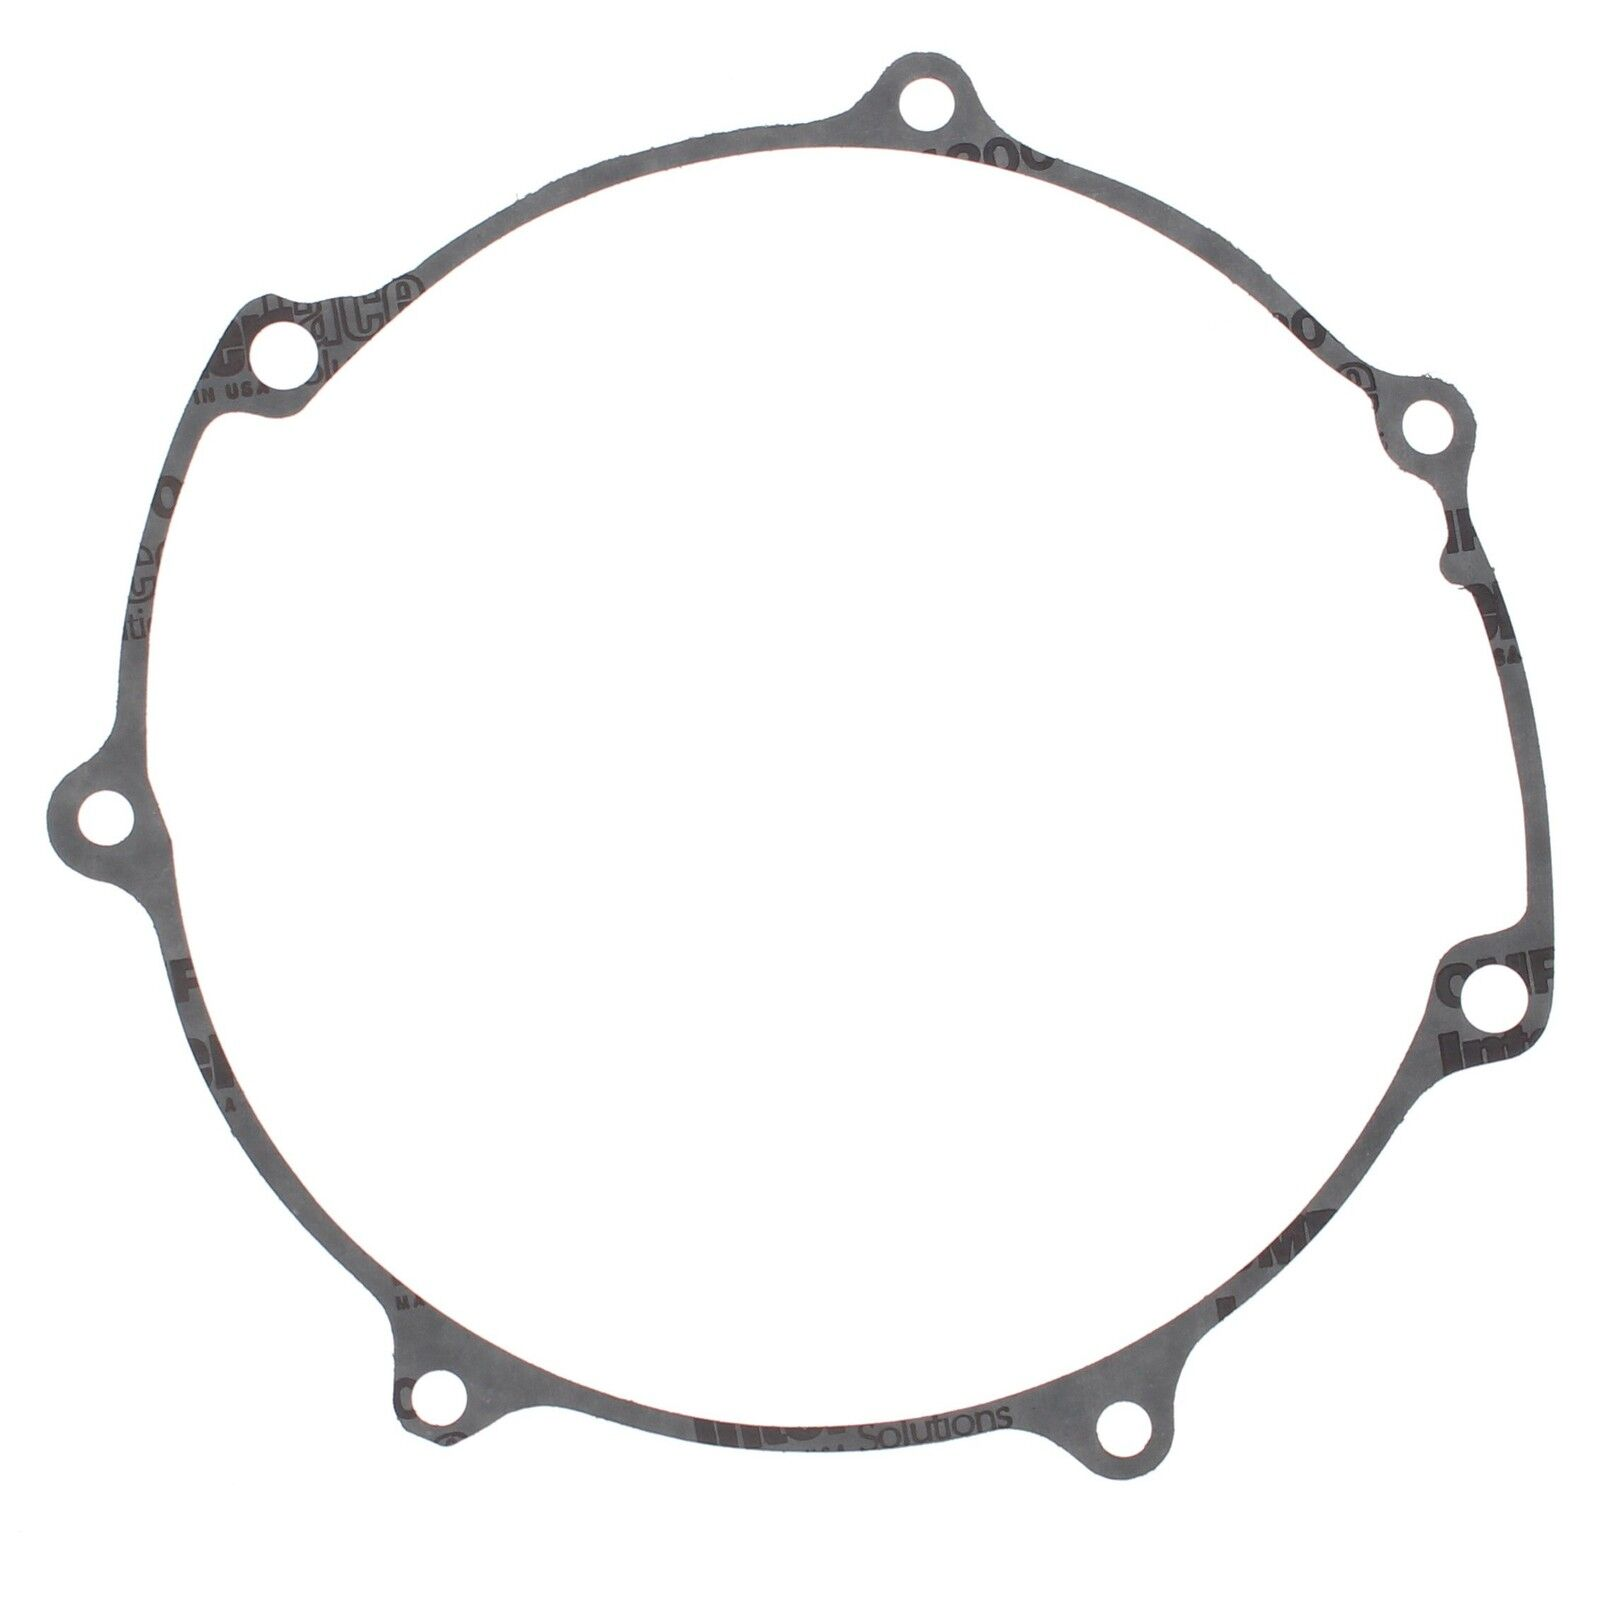 Motorcycle Drivetrain & Transmission Parts Clutch Cover